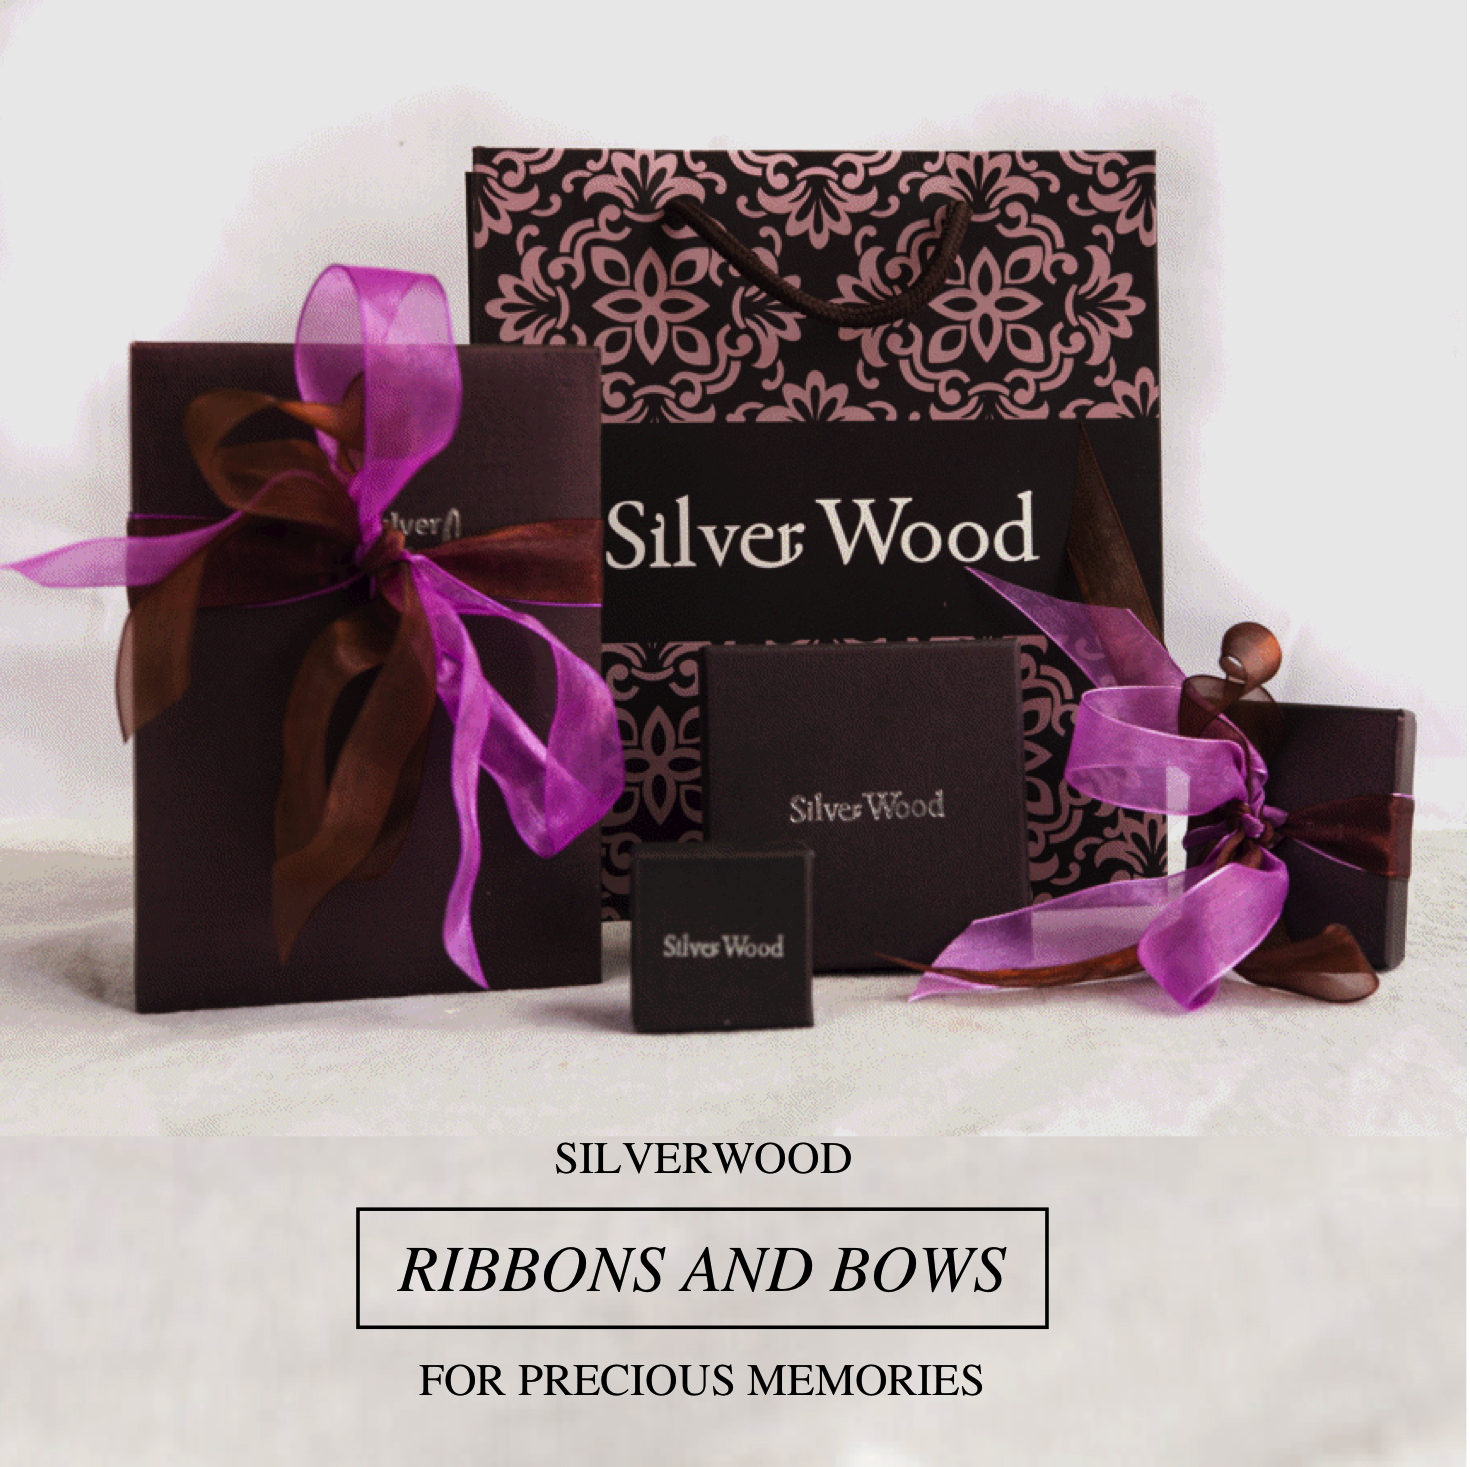 Silverwood gift packaging ribbons and bows